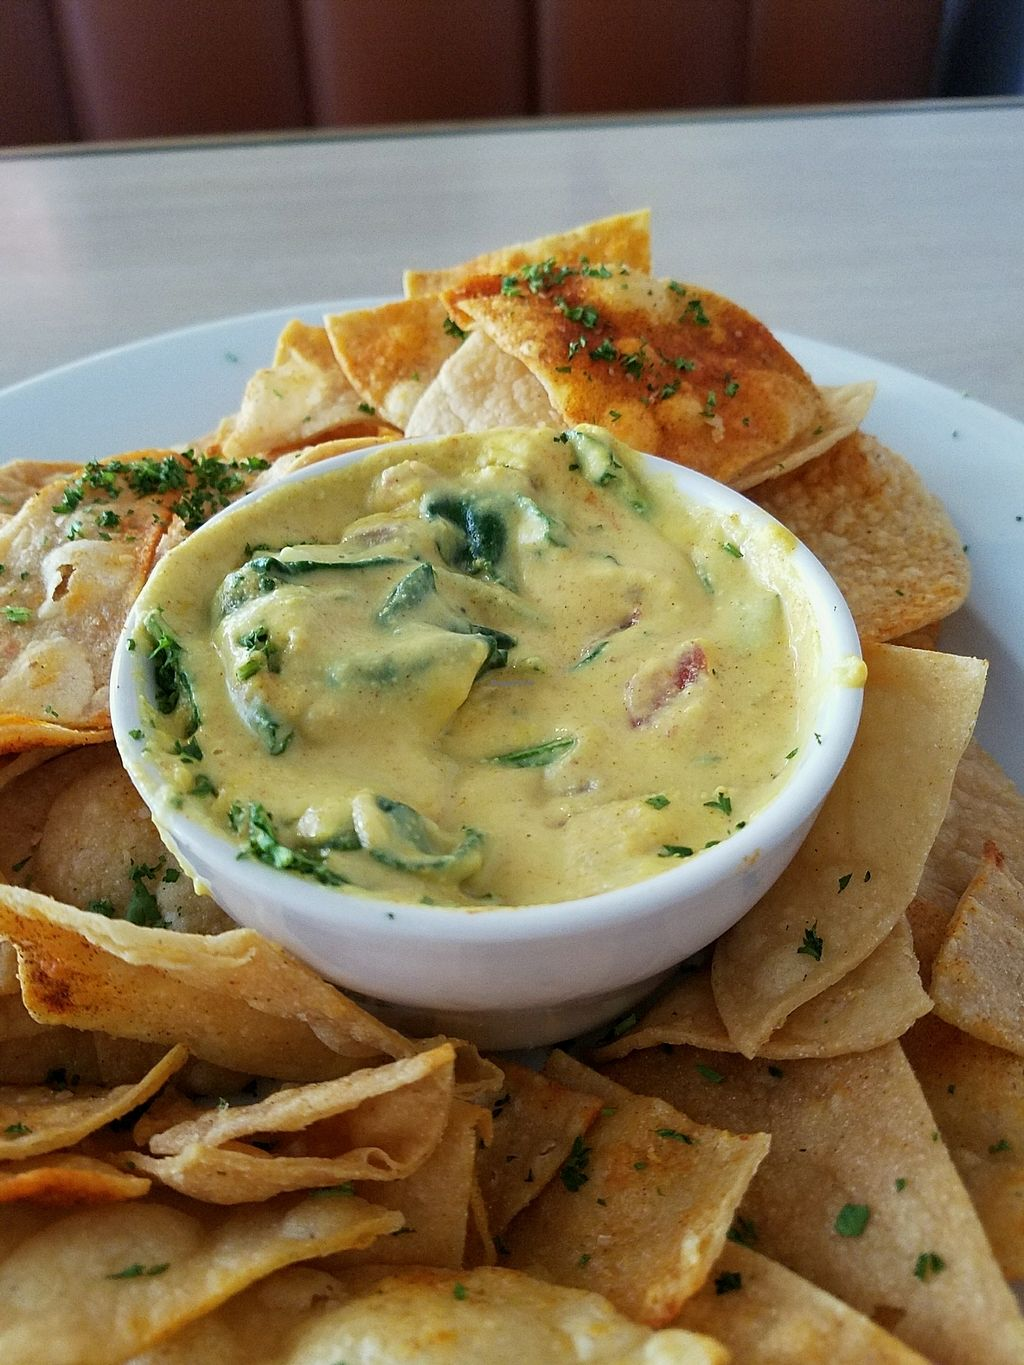 """Photo of Senor Veggie  by <a href=""""/members/profile/gostofish"""">gostofish</a> <br/>spinach queso (vegan) <br/> April 10, 2018  - <a href='/contact/abuse/image/37190/383474'>Report</a>"""